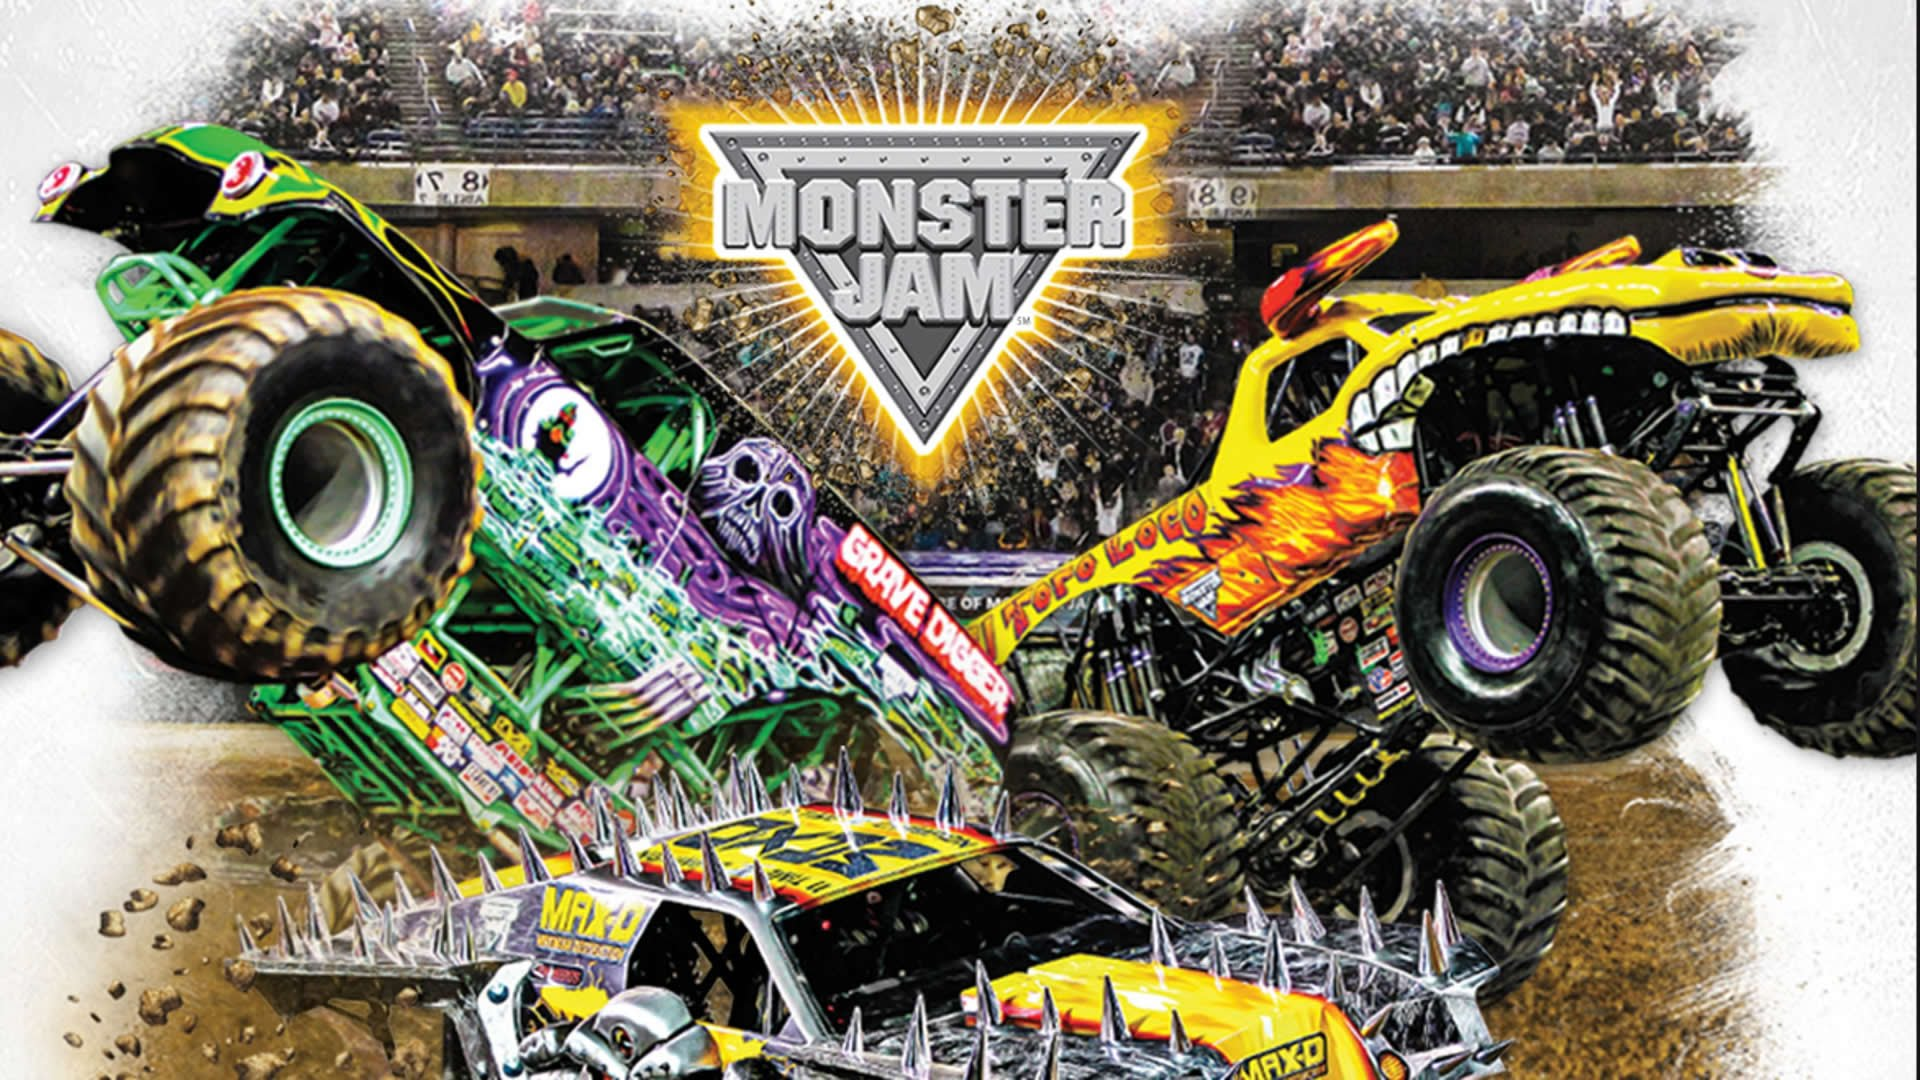 Monster Jam Wallpaper